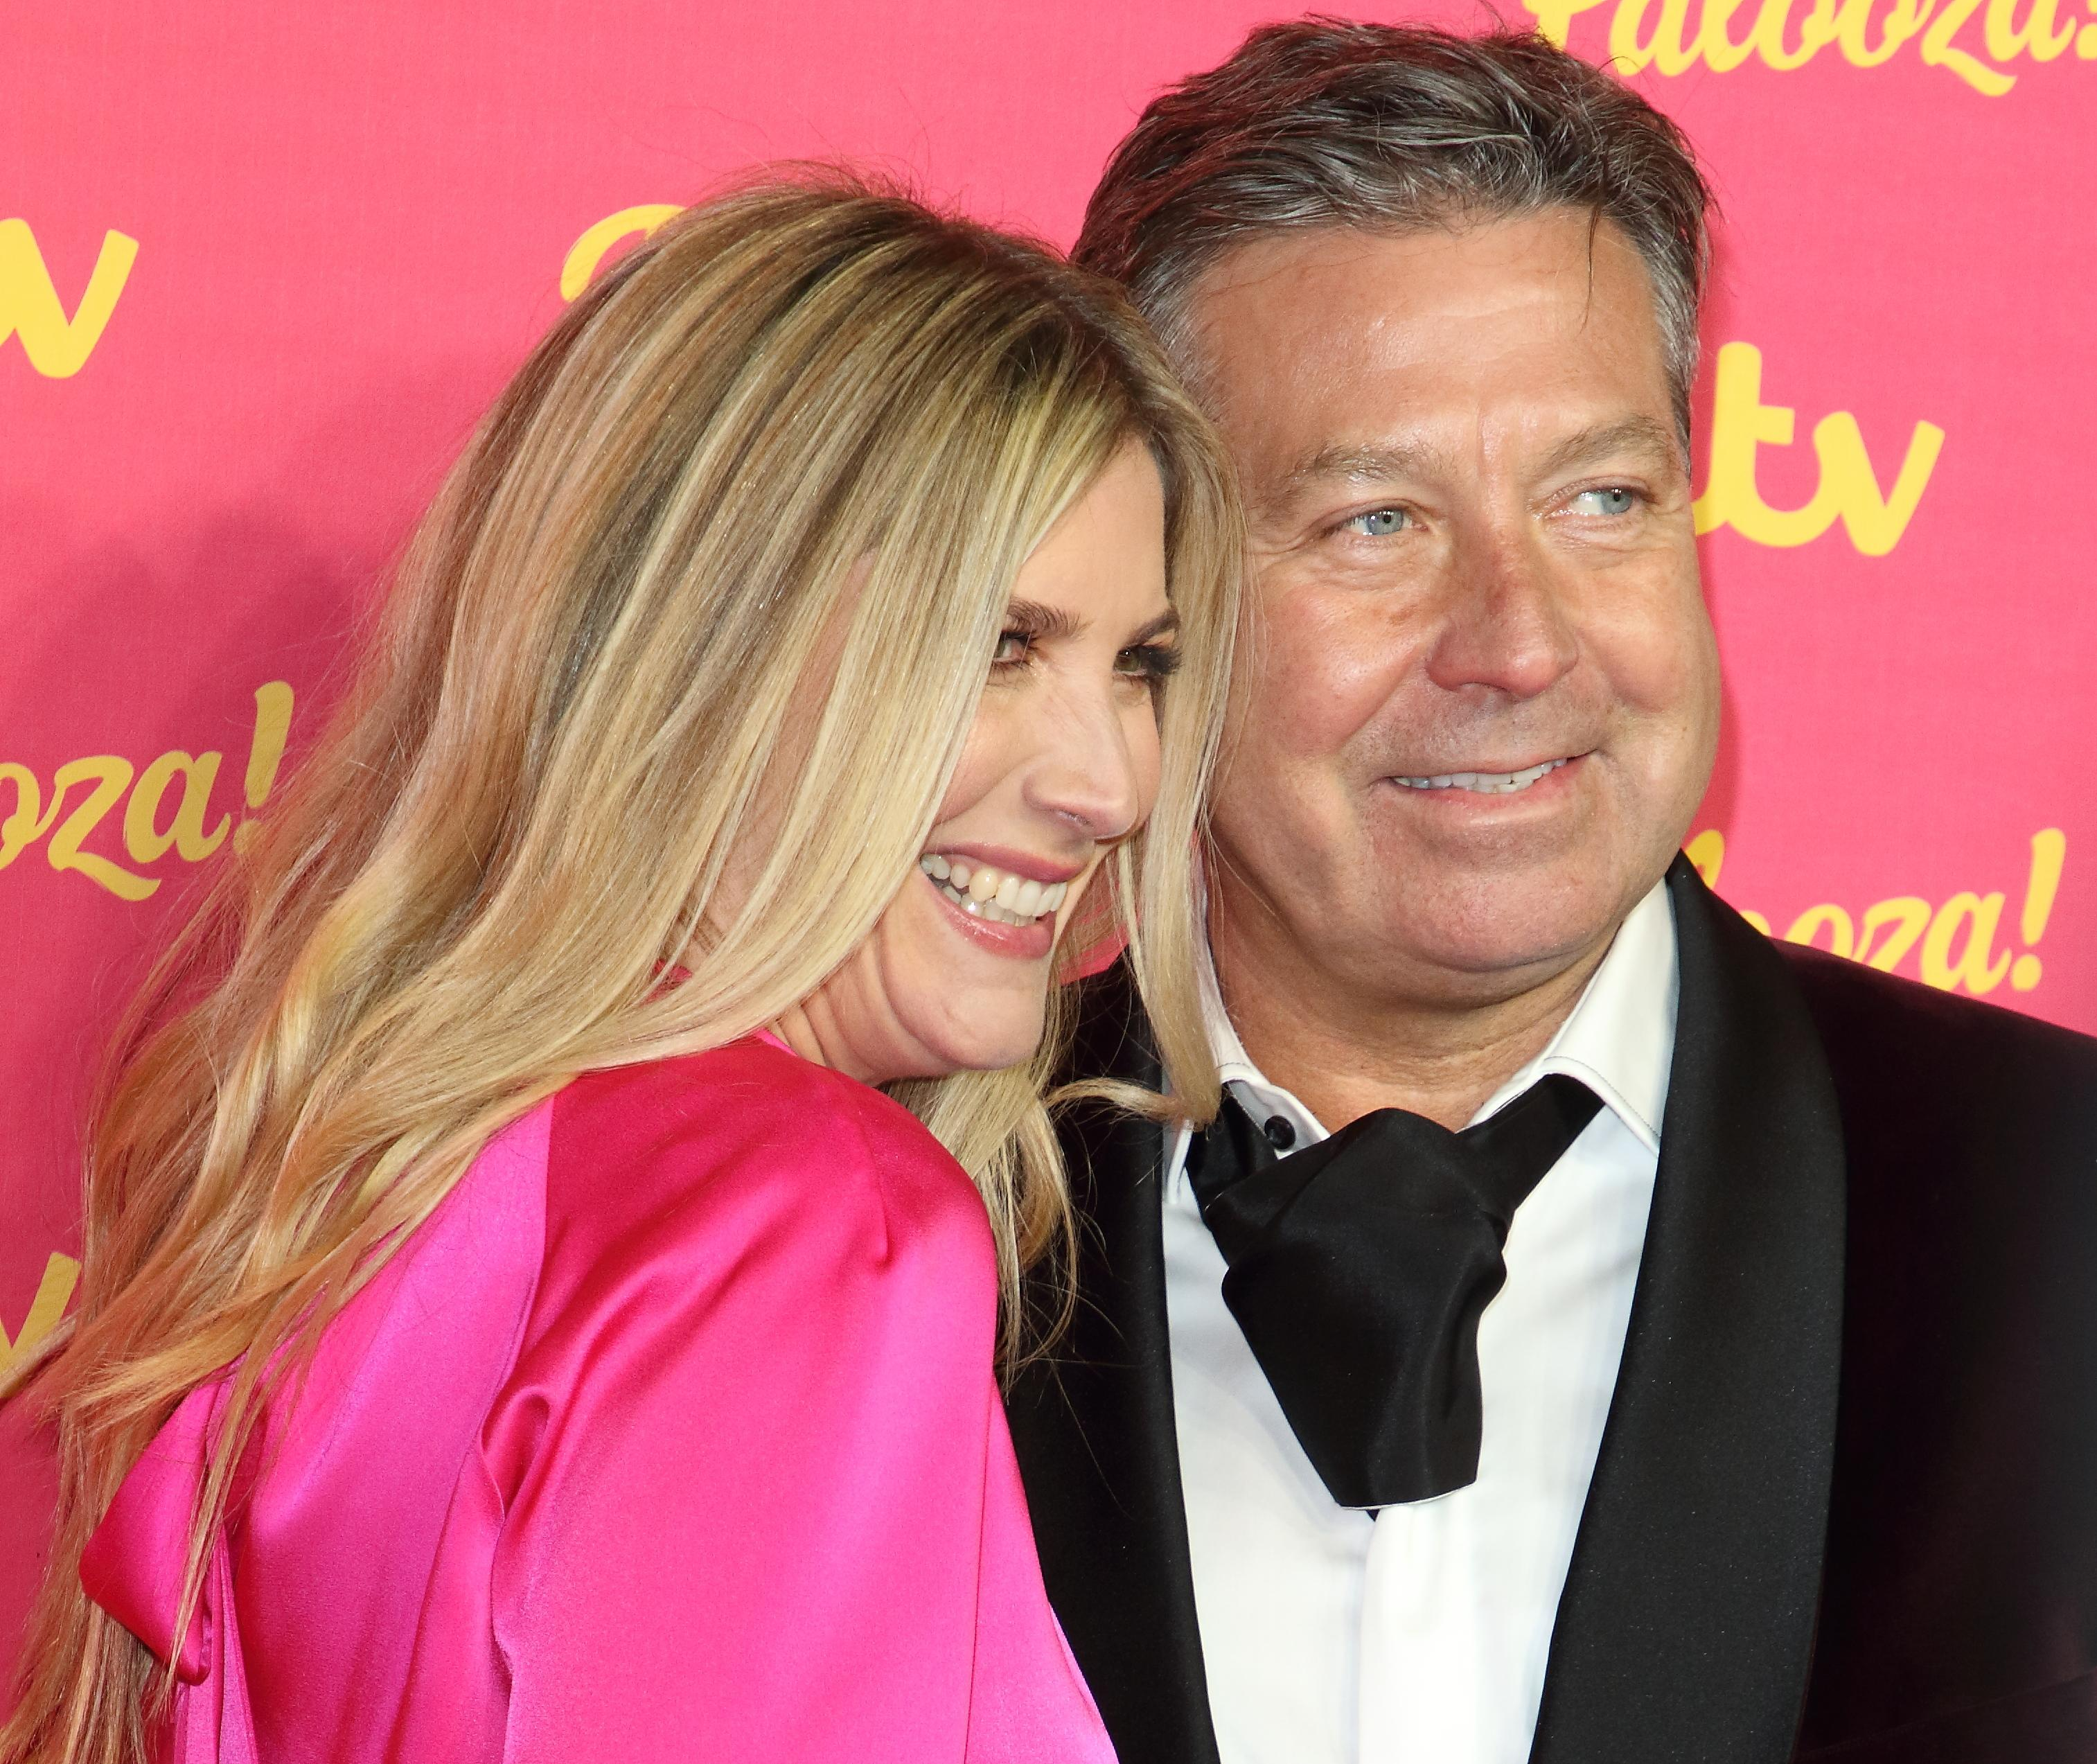 Lisa Faulkner and John Torode at the ITV Palooza at the Royal Festival Hall, South Bank (Photo by Keith Mayhew / SOPA Images/Sipa USA)